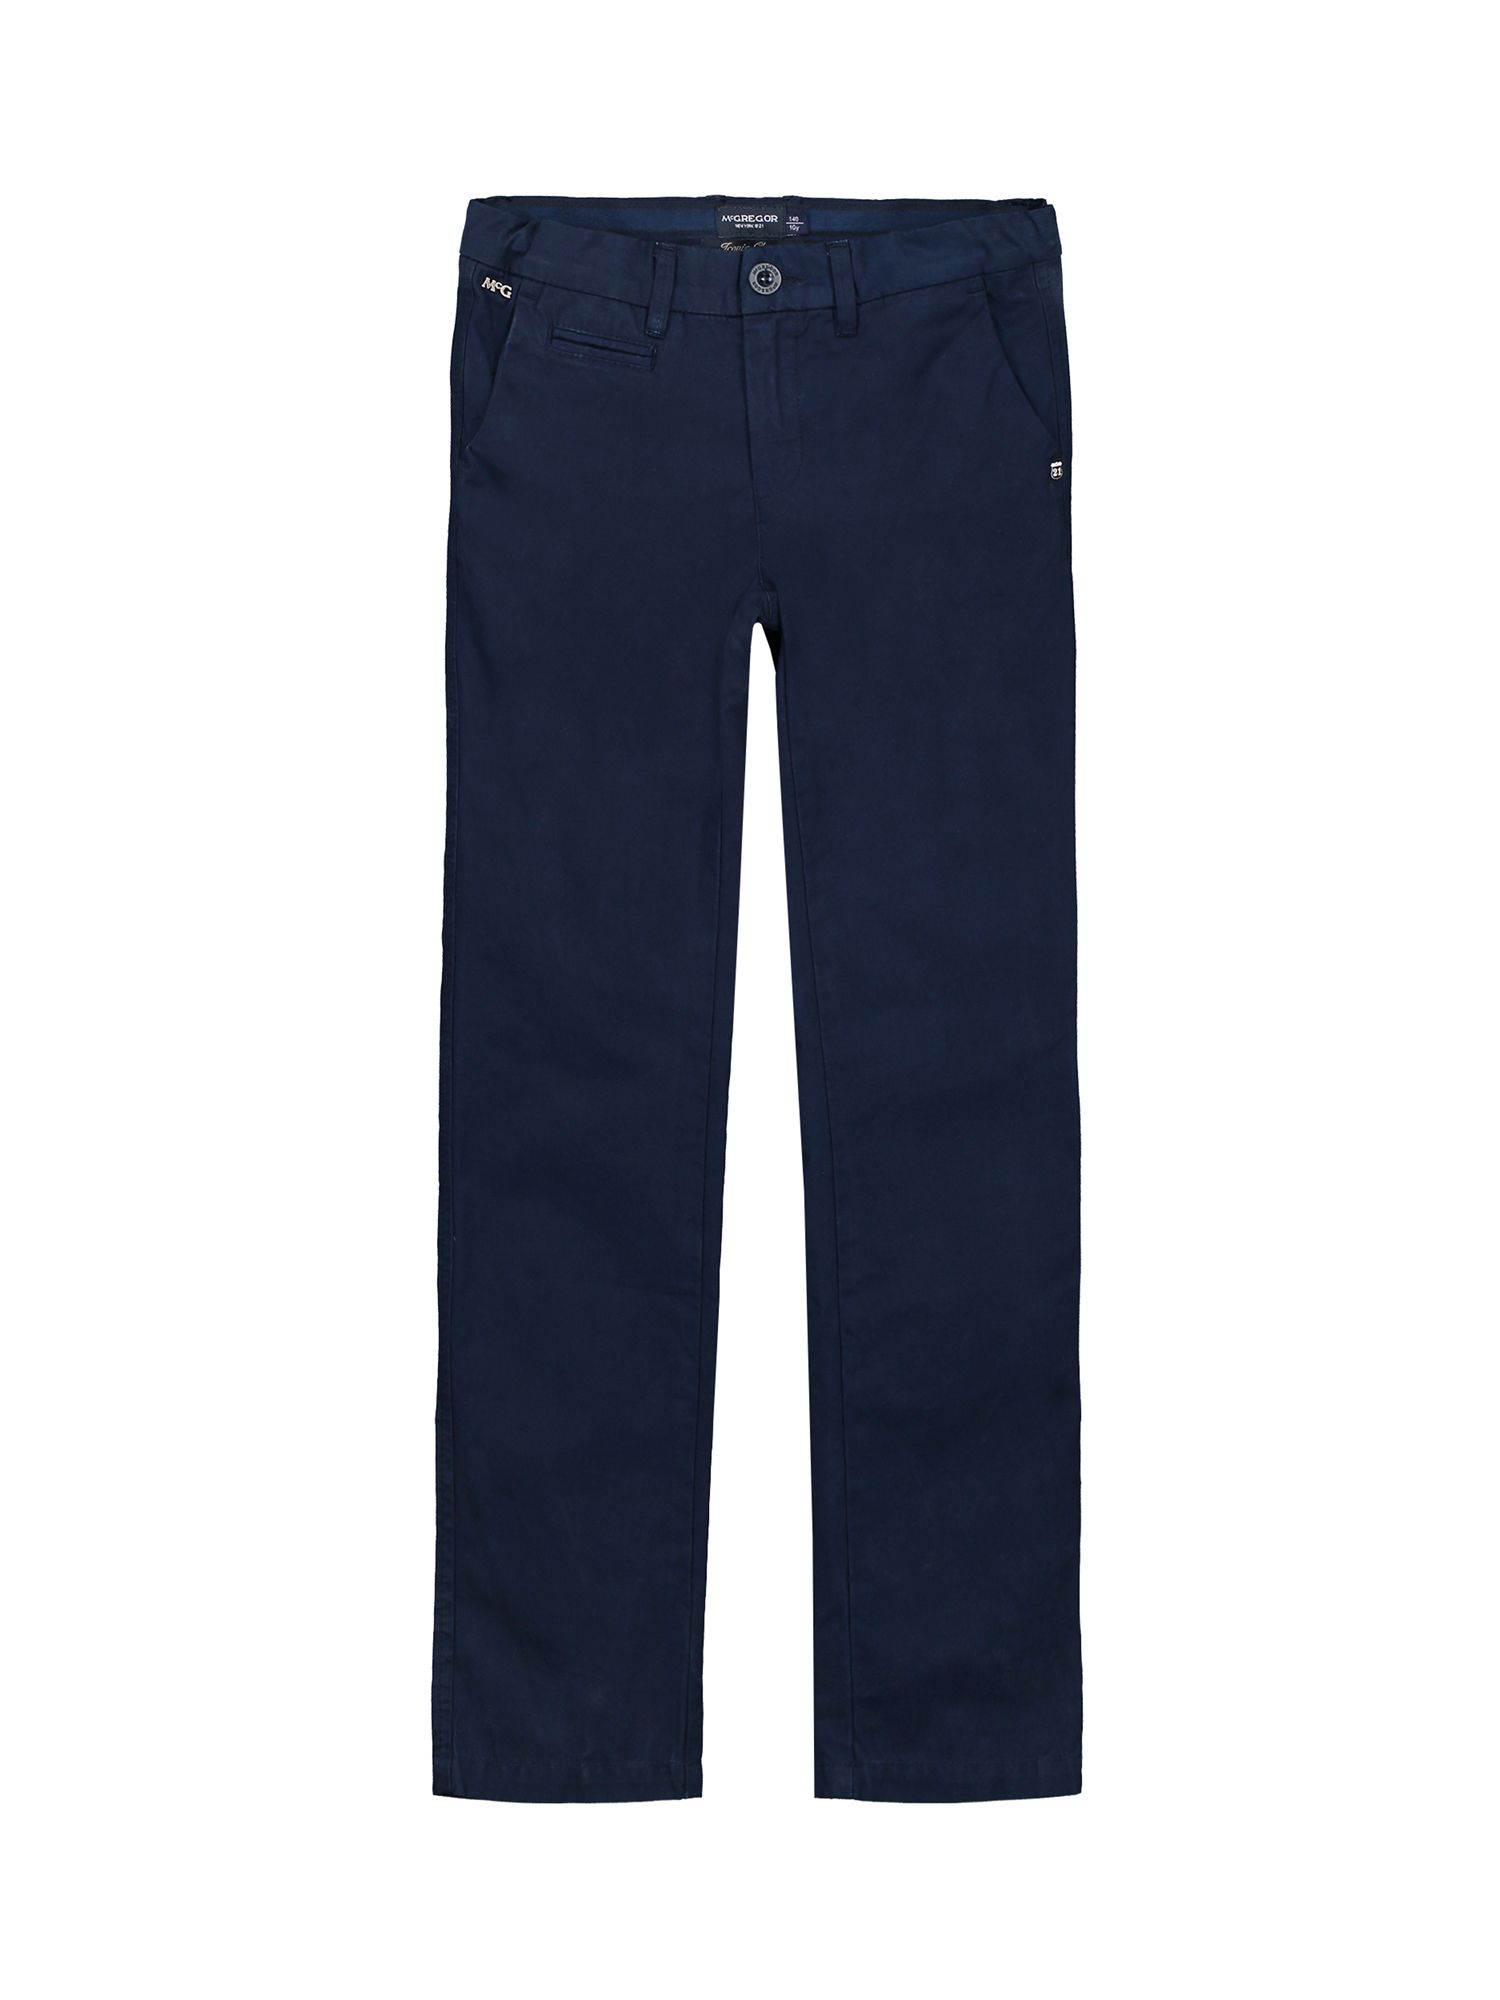 McGregor McGregor Boys Pants Ryan Dunn, Navy